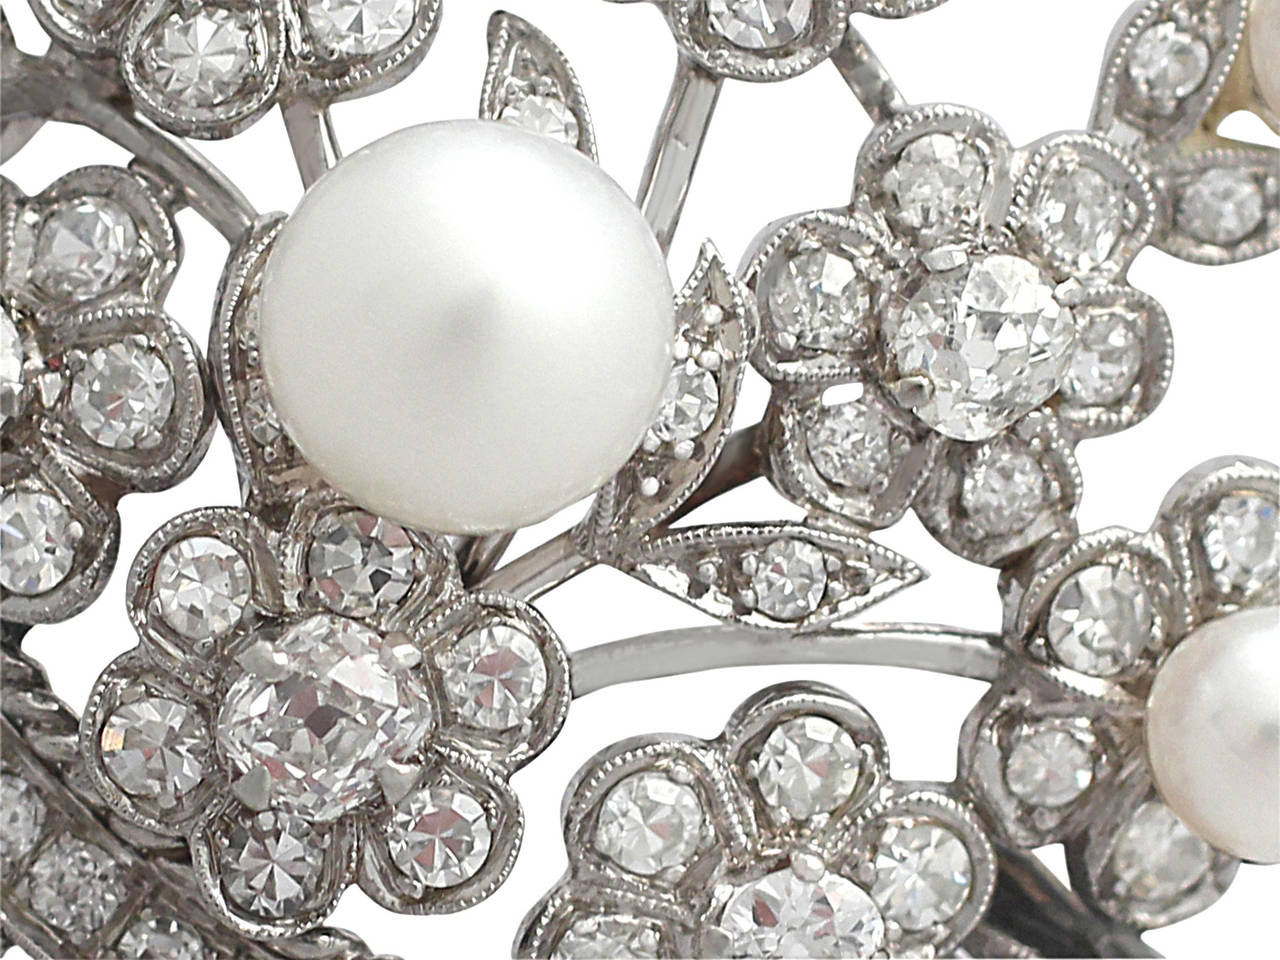 2.81Ct Diamond and Pearl, 14k White Gold Brooch - Antique Circa 1900 5